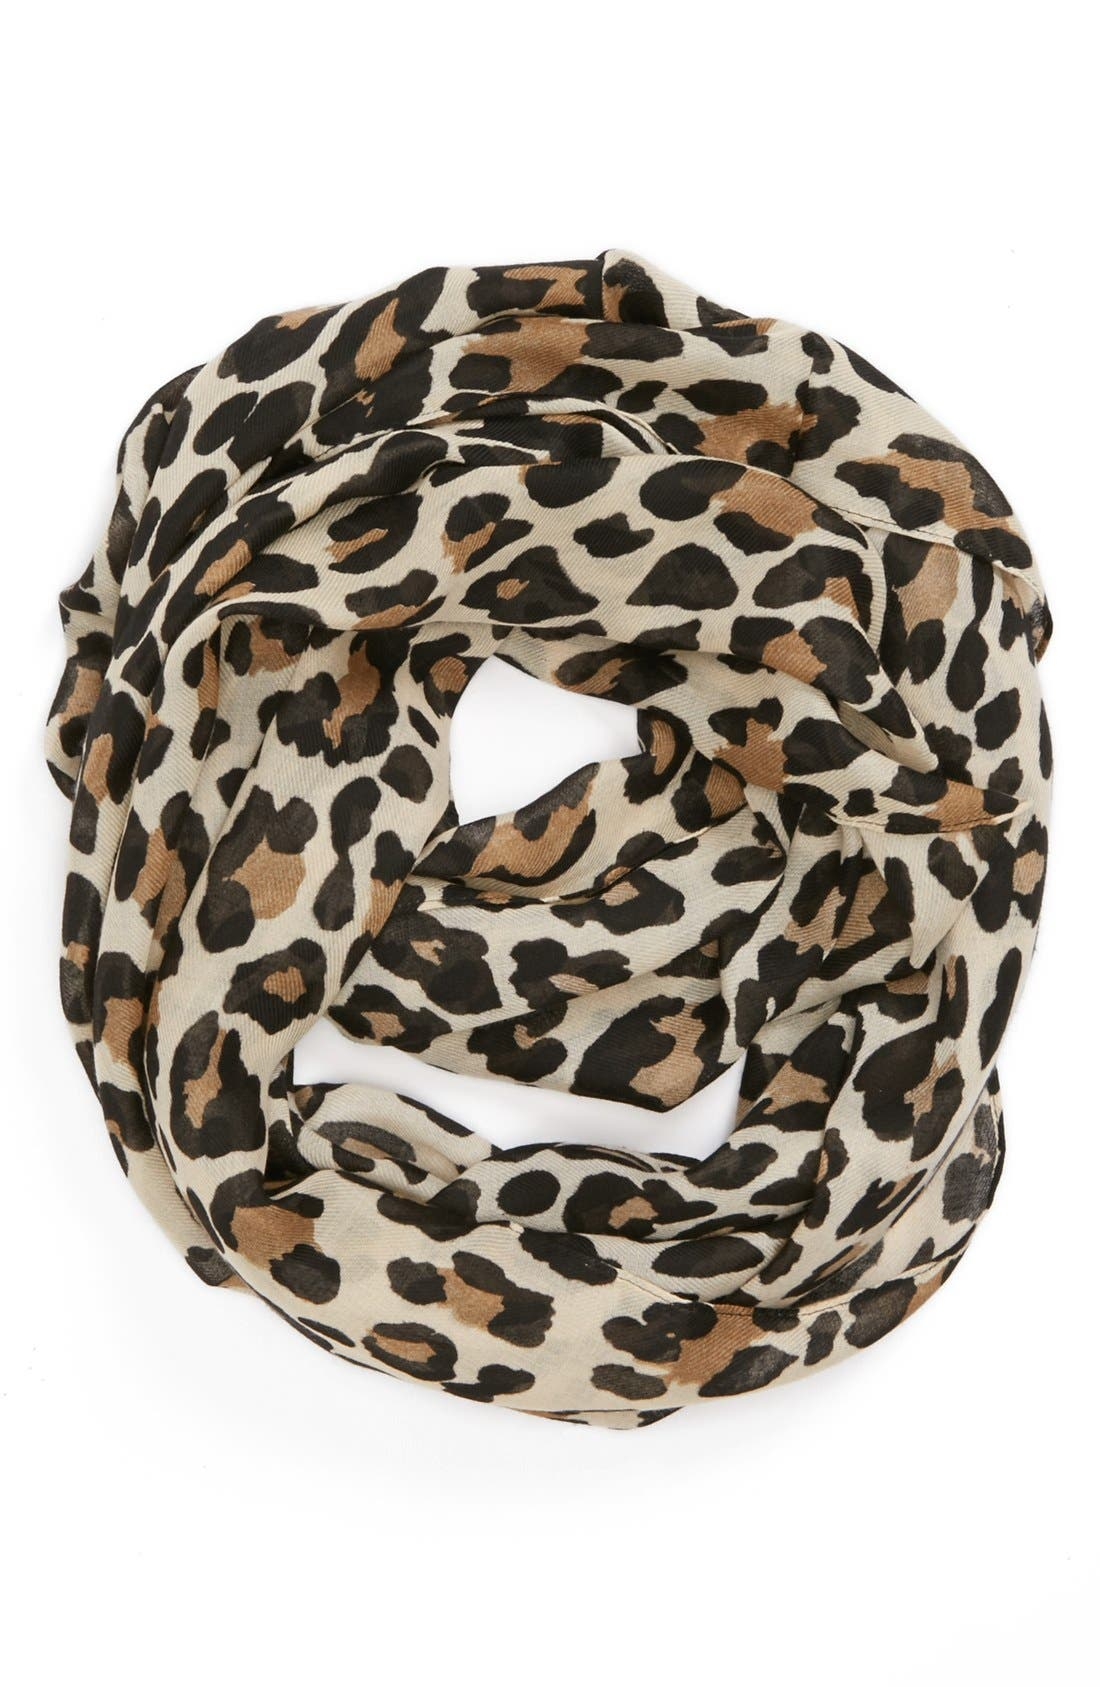 Alternate Image 1 Selected - Evelyn K Cheetah Print Infinity Scarf